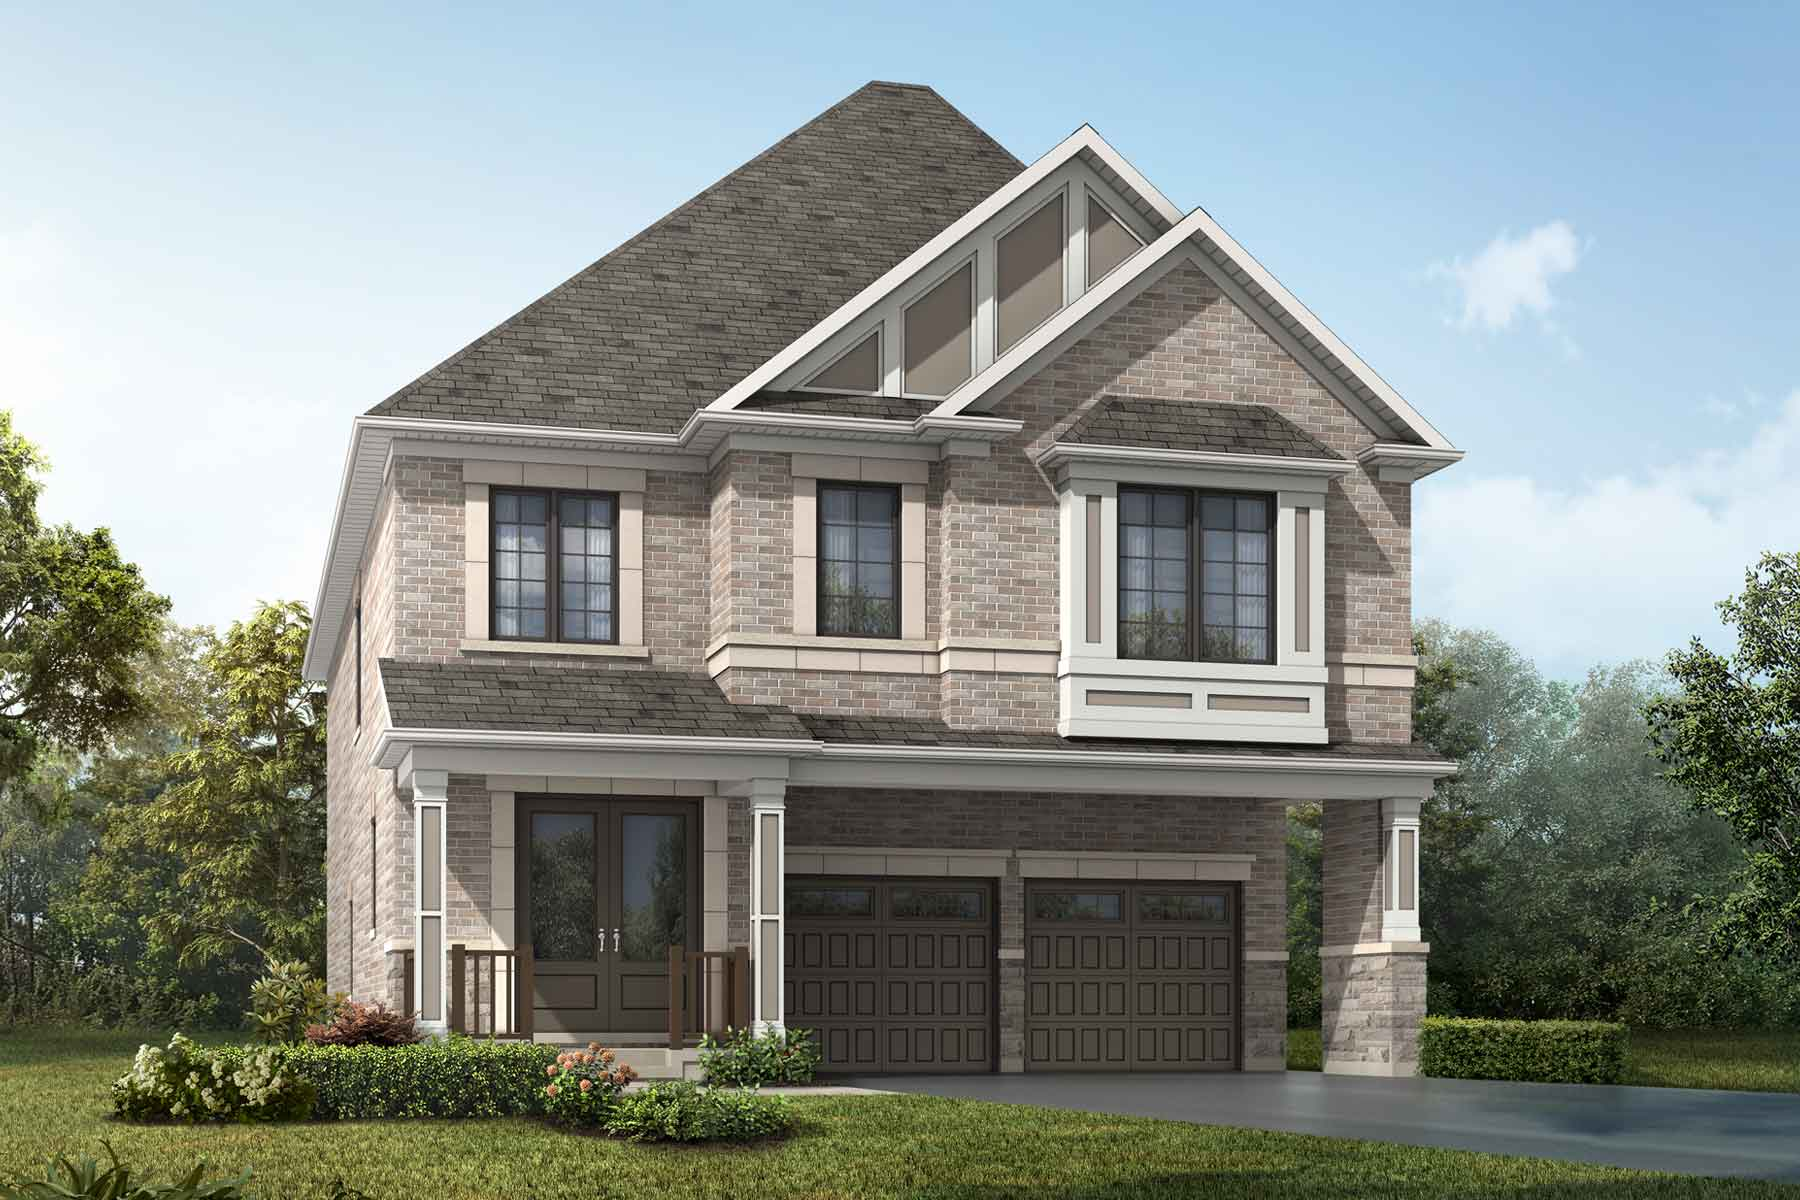 Mulberry Plan traditional_springwater_mulberry_main at Springwater in Markham Ontario by Mattamy Homes